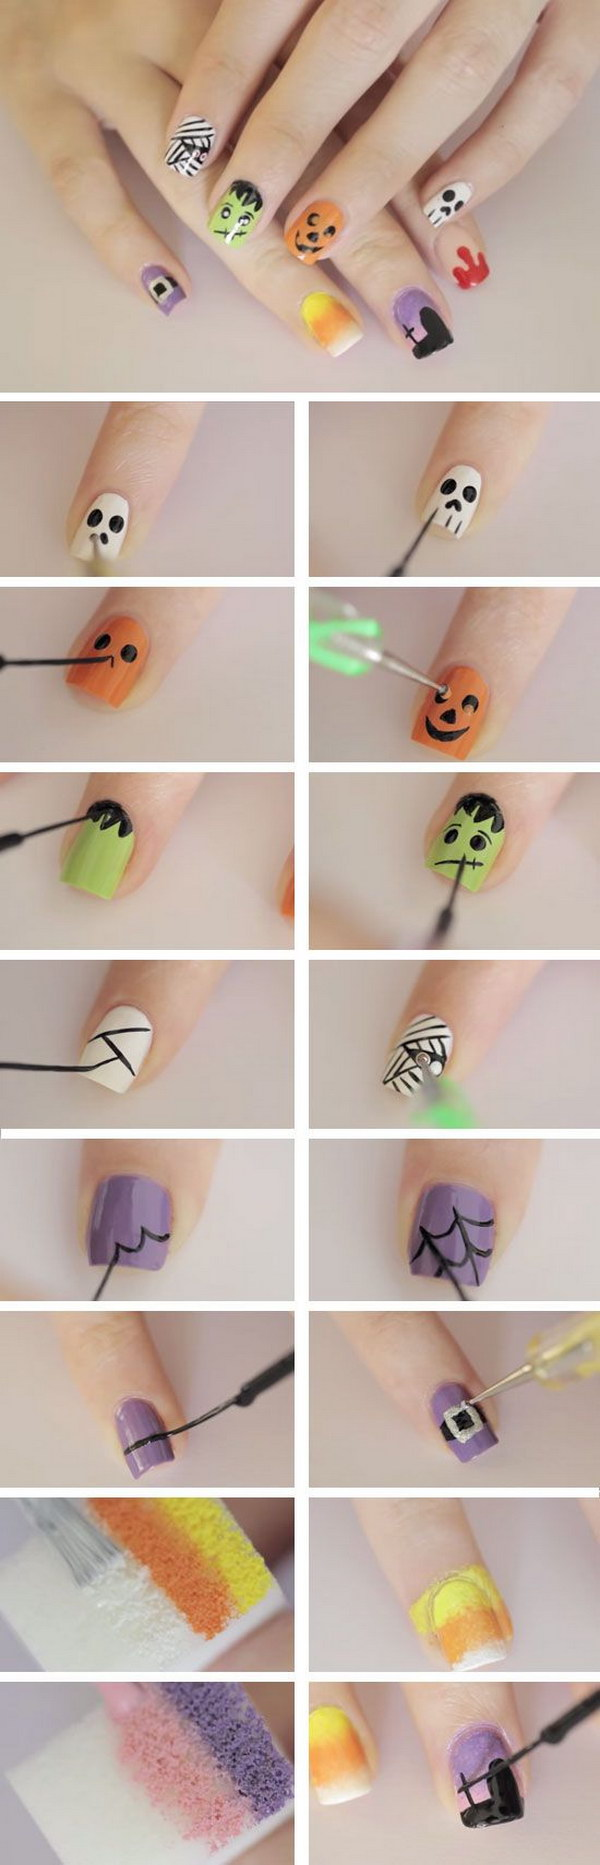 20 Step By Step Halloween Nail Art Design Tutorials 2017